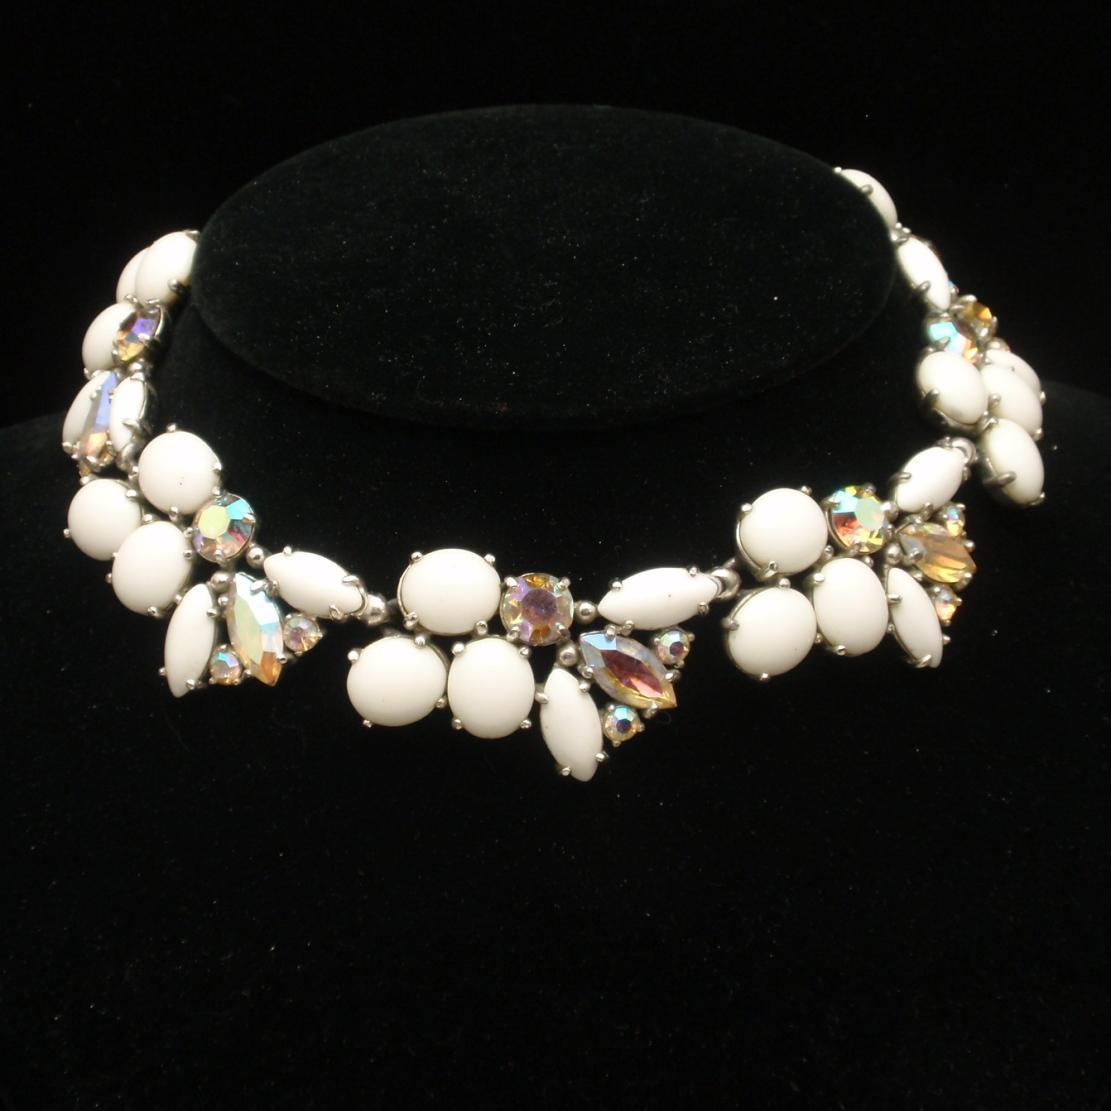 Milk White and Aurora Borealis AB Rhinestones Necklace Vintage